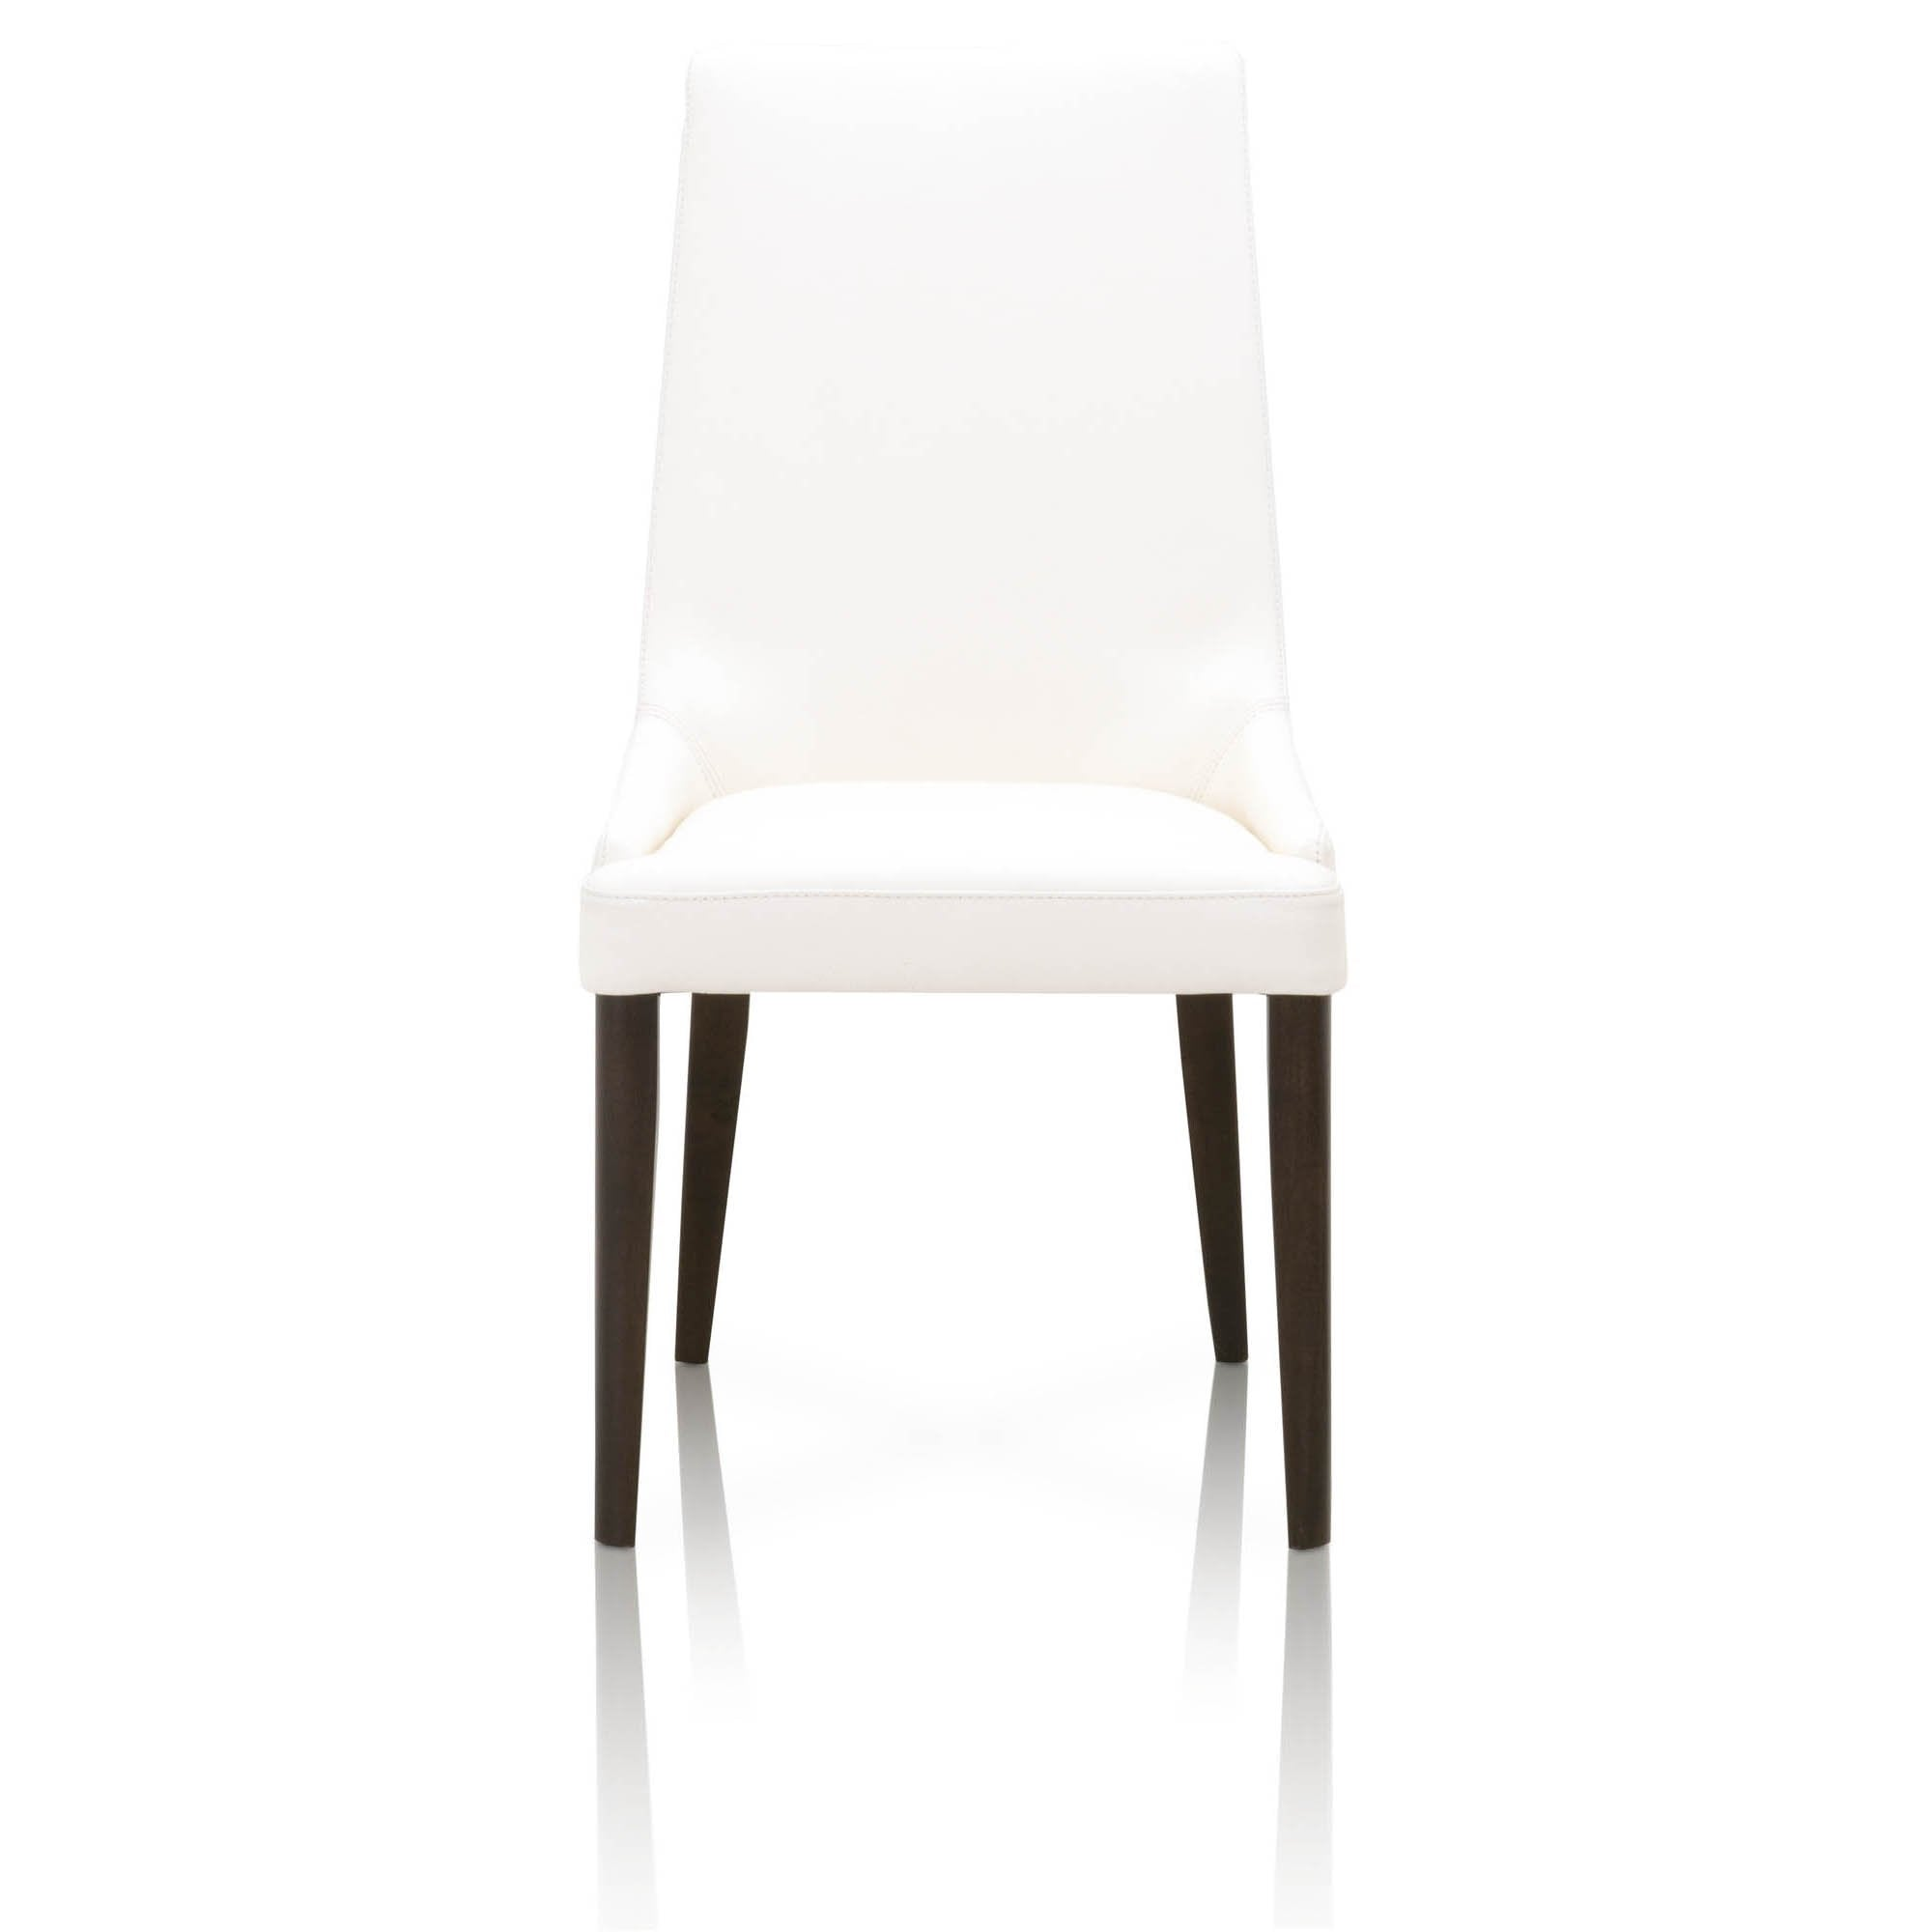 Aurora Dining Chair (Set of 2) in Dark Wenge Alabaster Leather